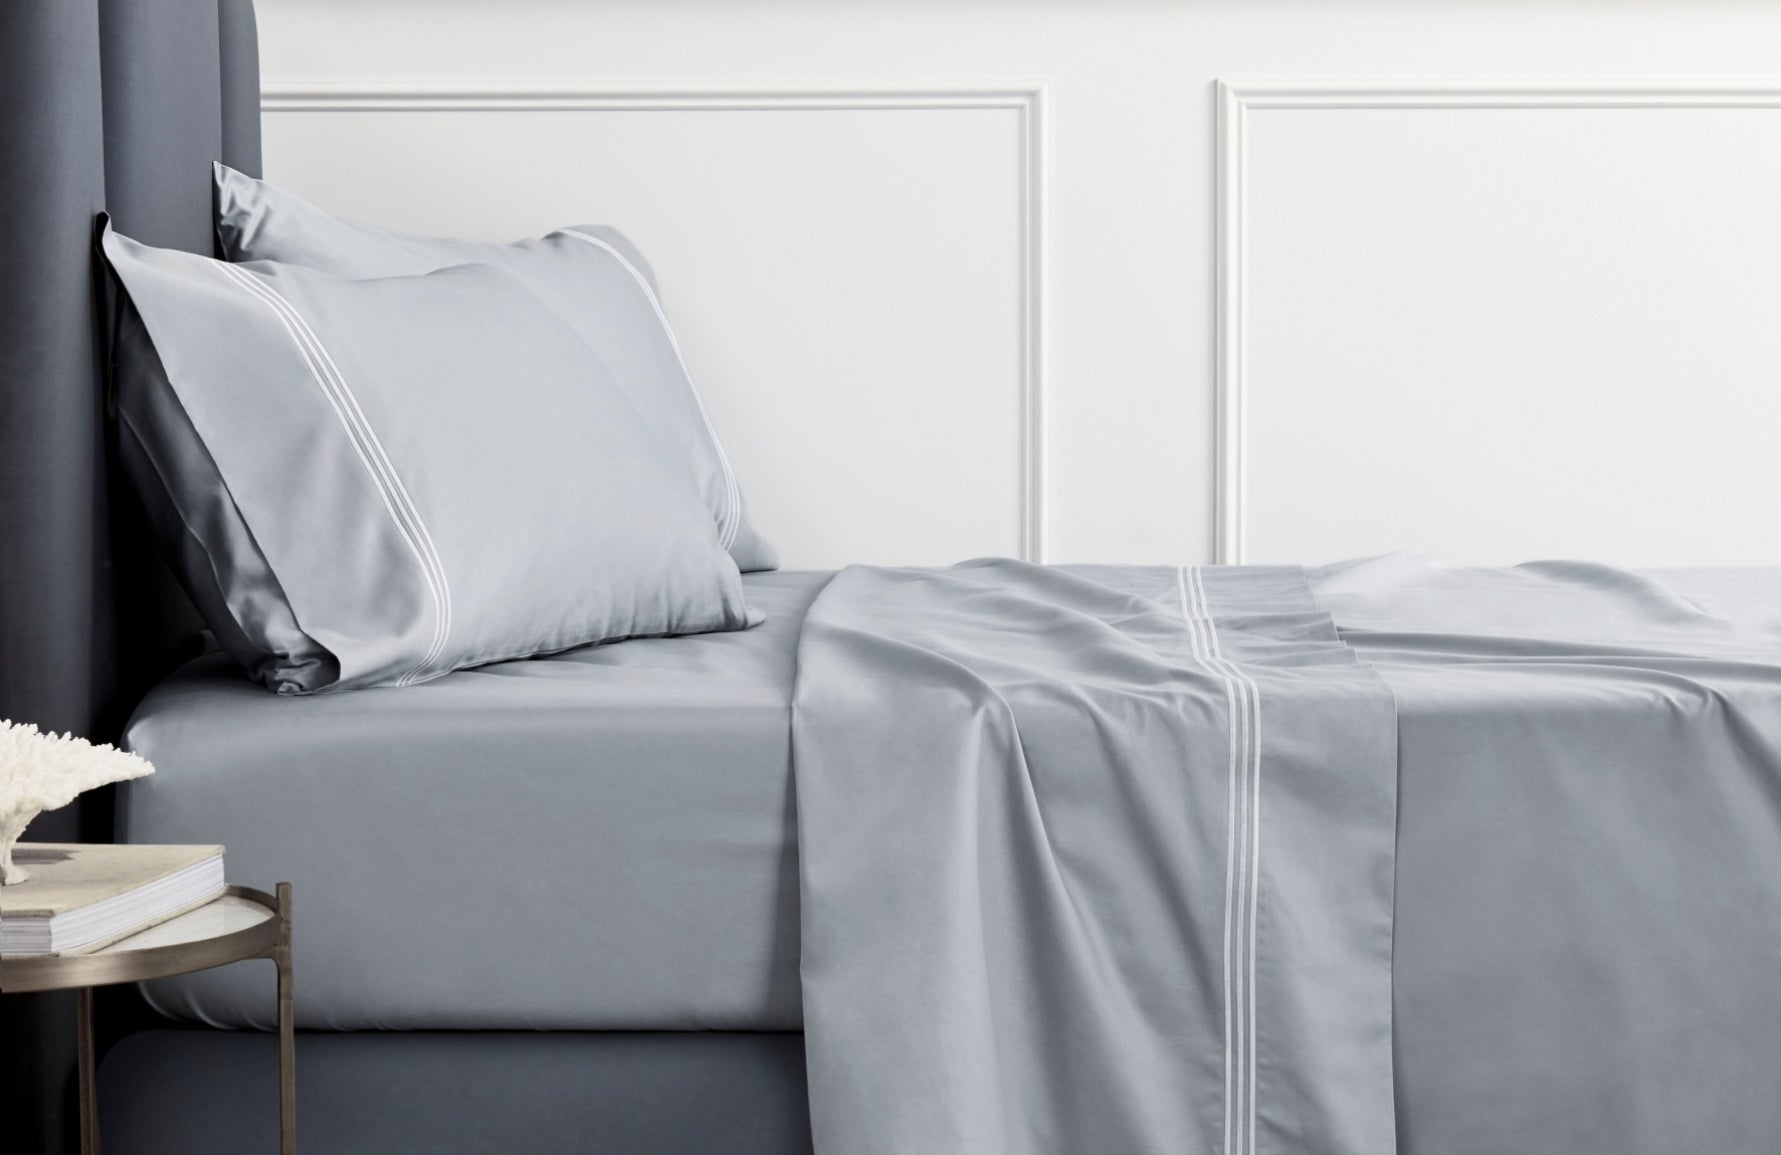 How To Choose The Best Type of Bedding For Your Bed | LuxDeco.com